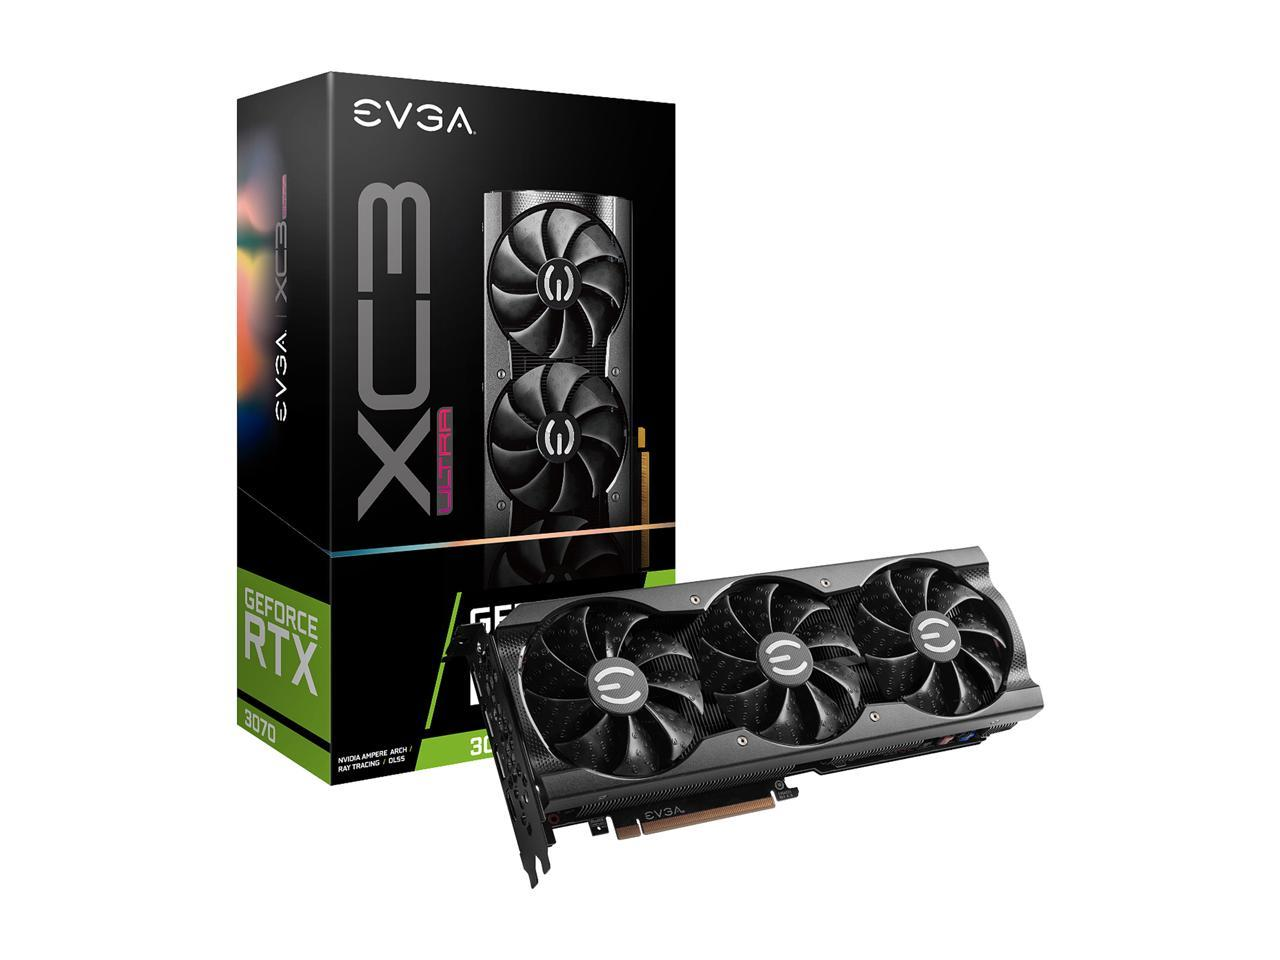 EVGA Video Card  GeForce RTX 3070 XC3 ULTRA 8GB GDDR6 iCX3 Cooling ARGB + 400 PSU EVGA + 80mm Fractal SSR3 Fan Bundle